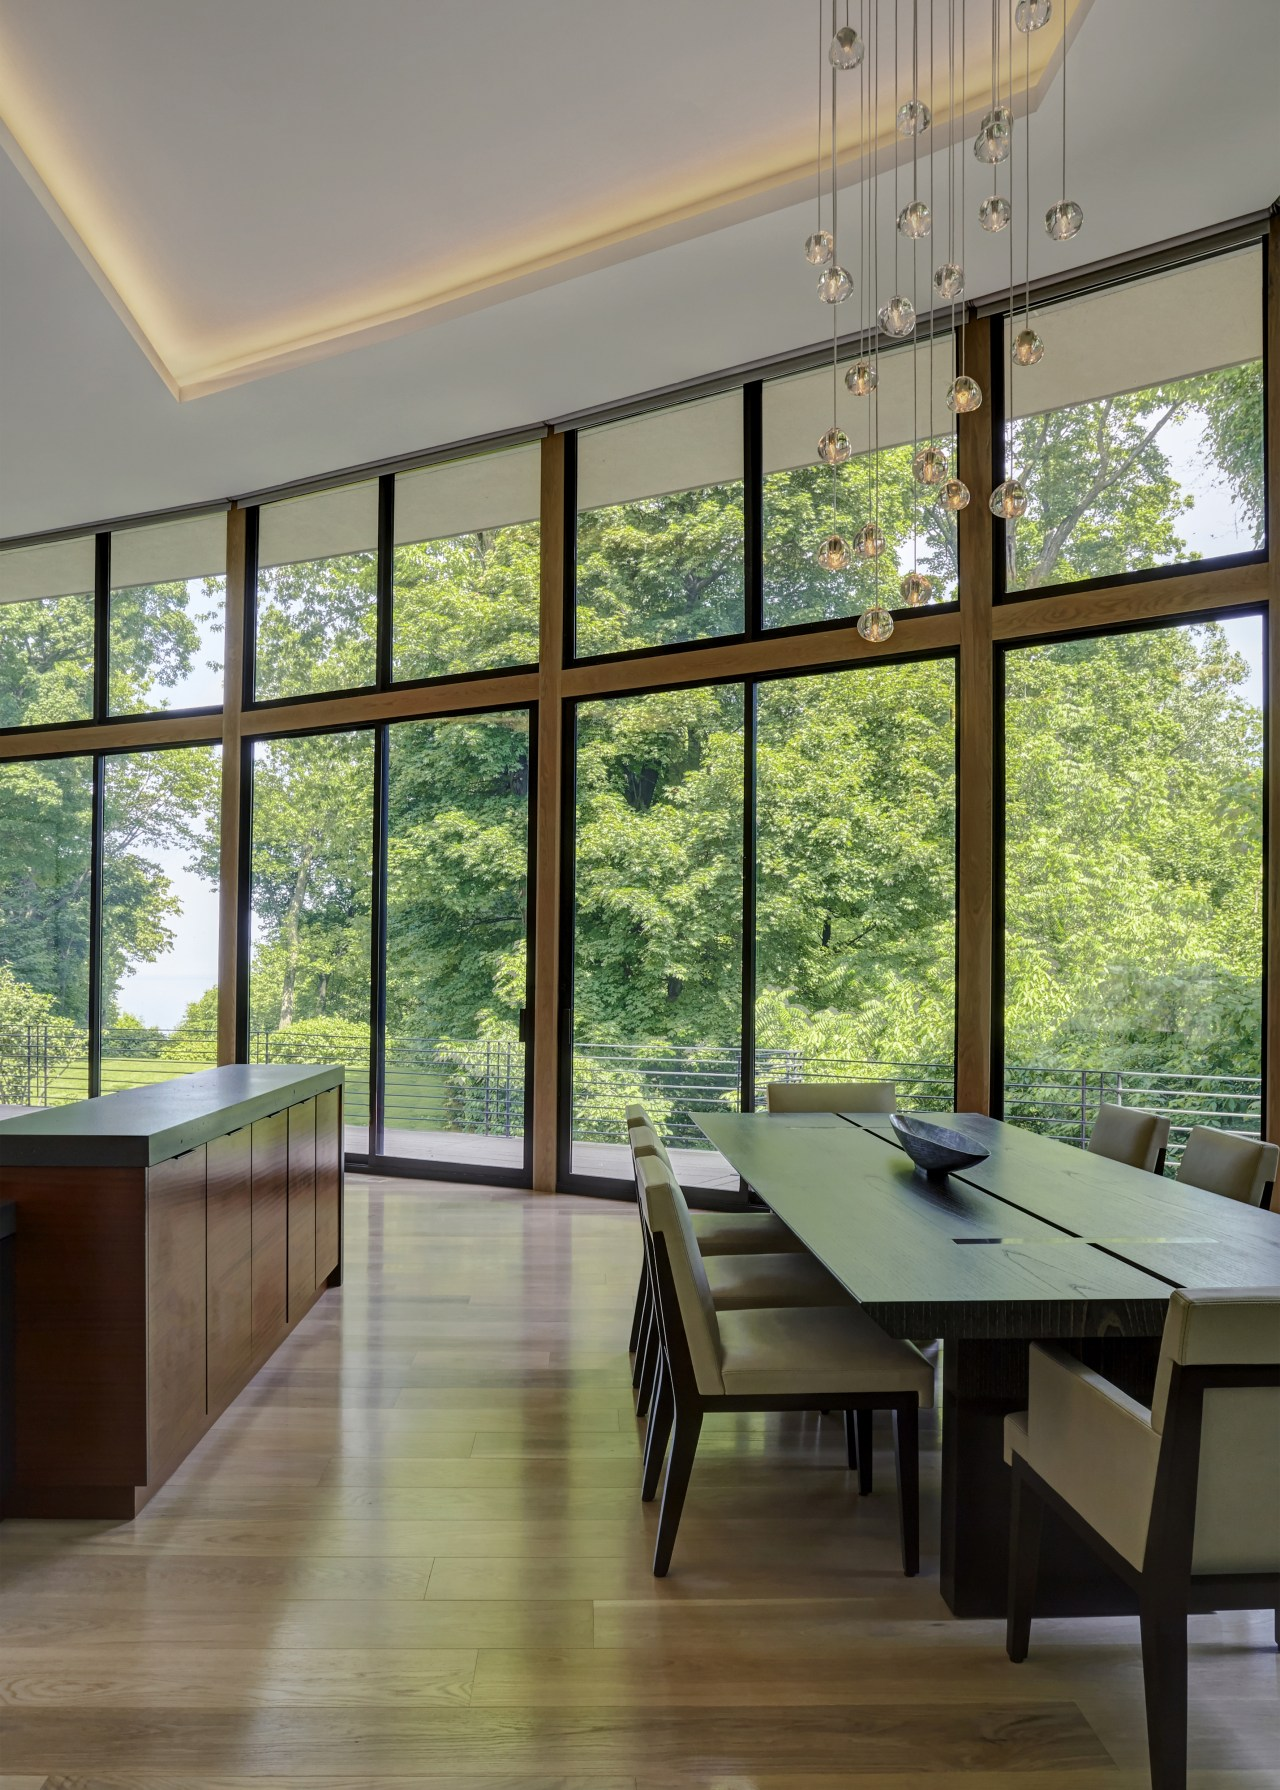 Like the kitchen in this renovated home, the architecture, building, ceiling, daylighting, design, dining room, door, floor, flooring, furniture, glass, hardwood, home, house, interior design, living room, property, real estate, room, sash window, shade, table, tree, window, wood, wood flooring, gray